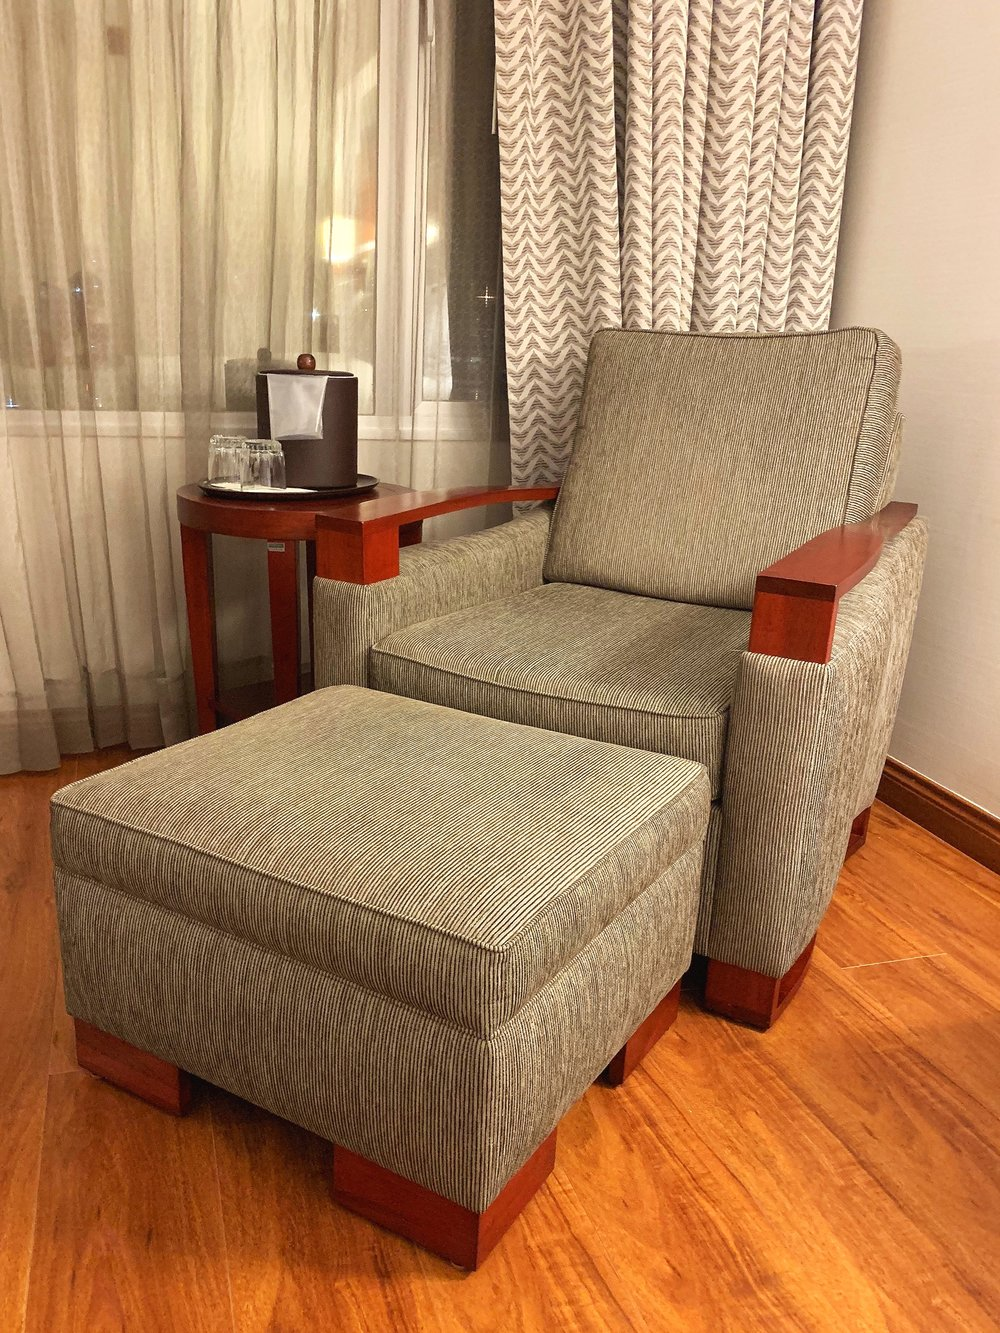 We loved this (very comfortable) seat and footstool.